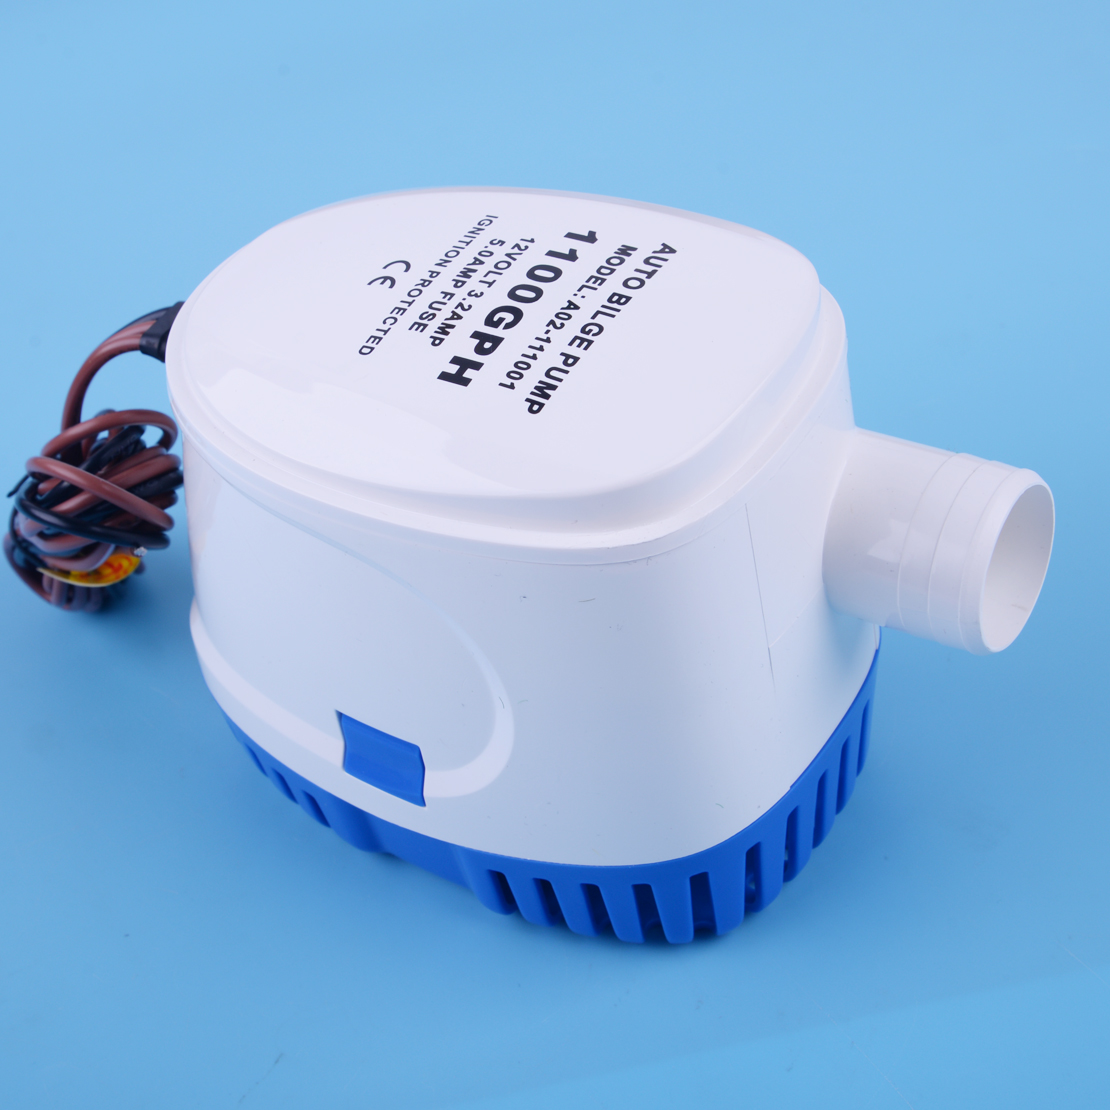 Beler Marine Automatic 12V 1100GPH 3.2A Ubmersible Bilge Auto Water Pump With Float Switch For Boat Hulls/bilges Bait Tanks